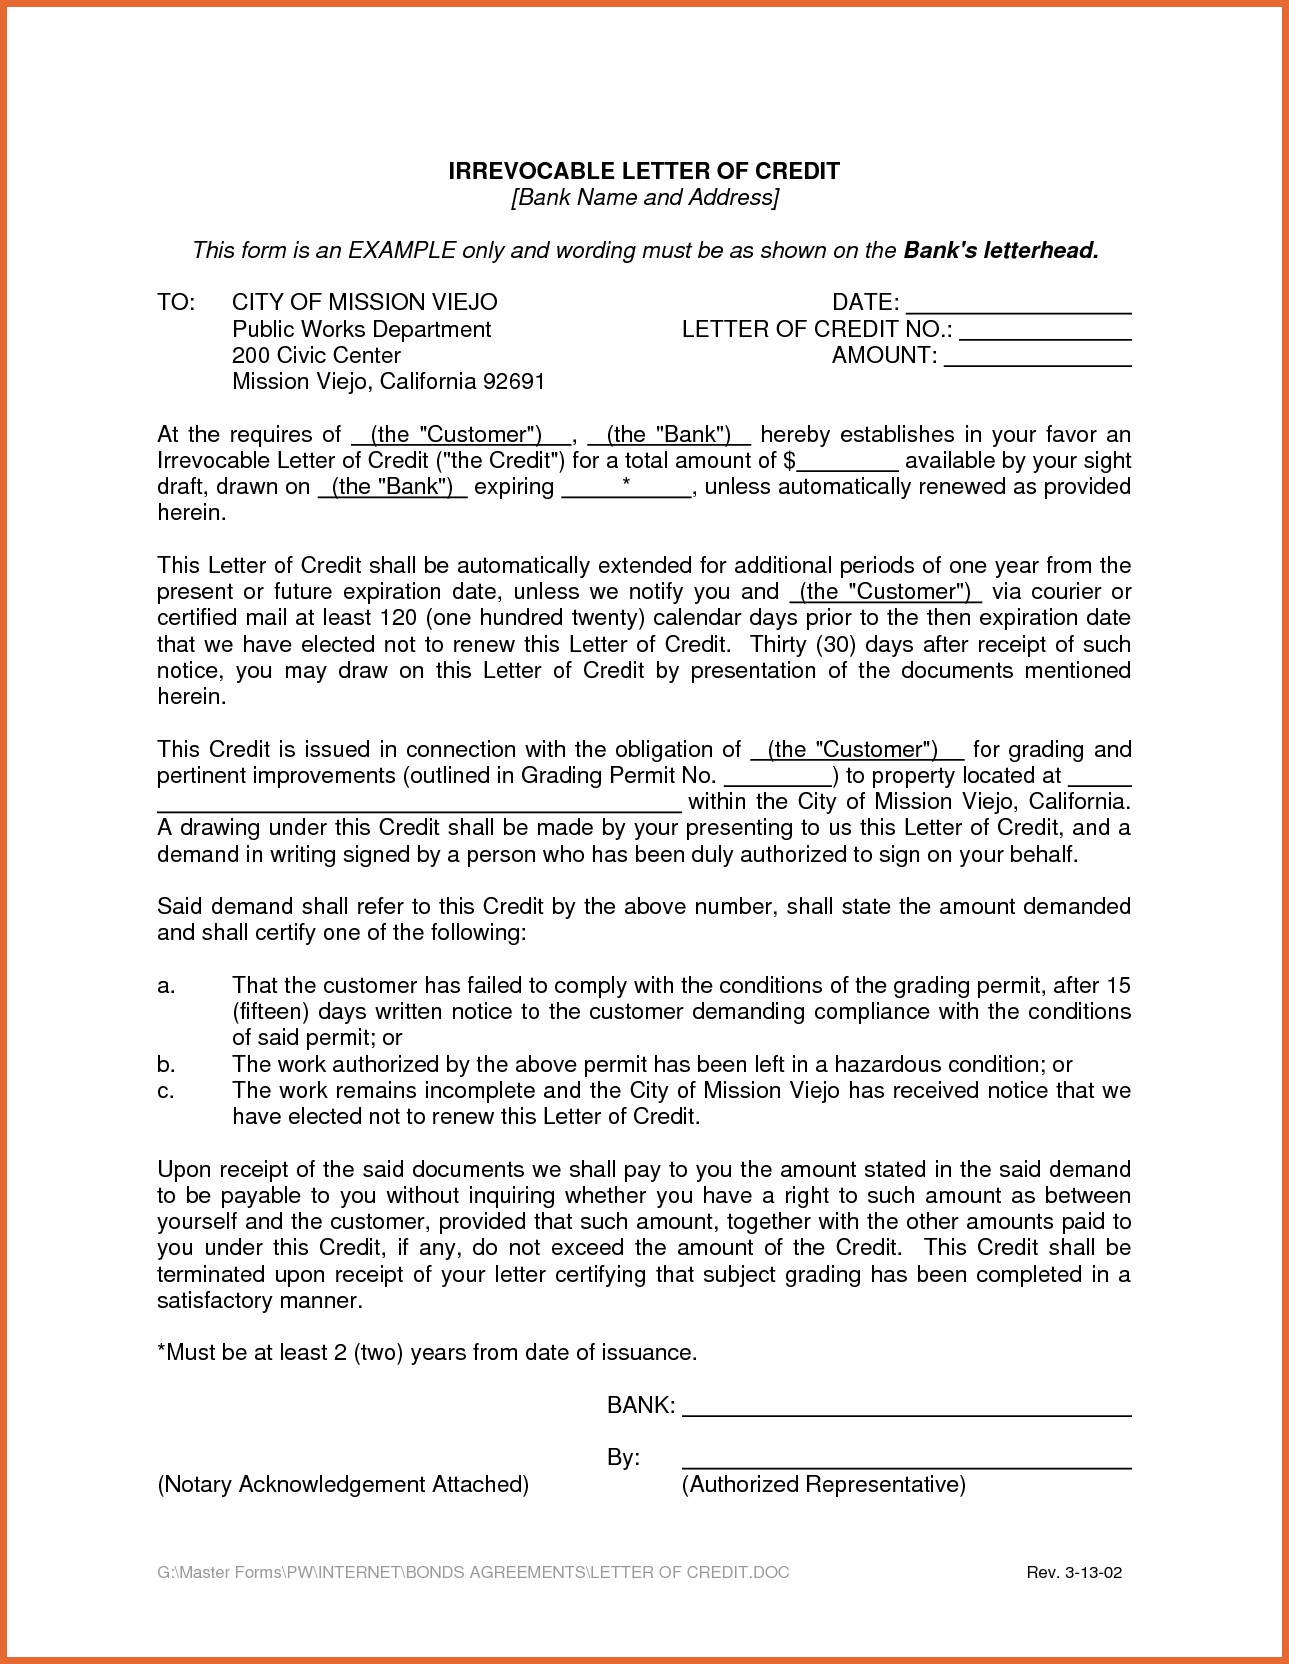 Irrevocable Letter Of Credit Template - Colorful Letter Credit Draft Template Mold Certificate Resume